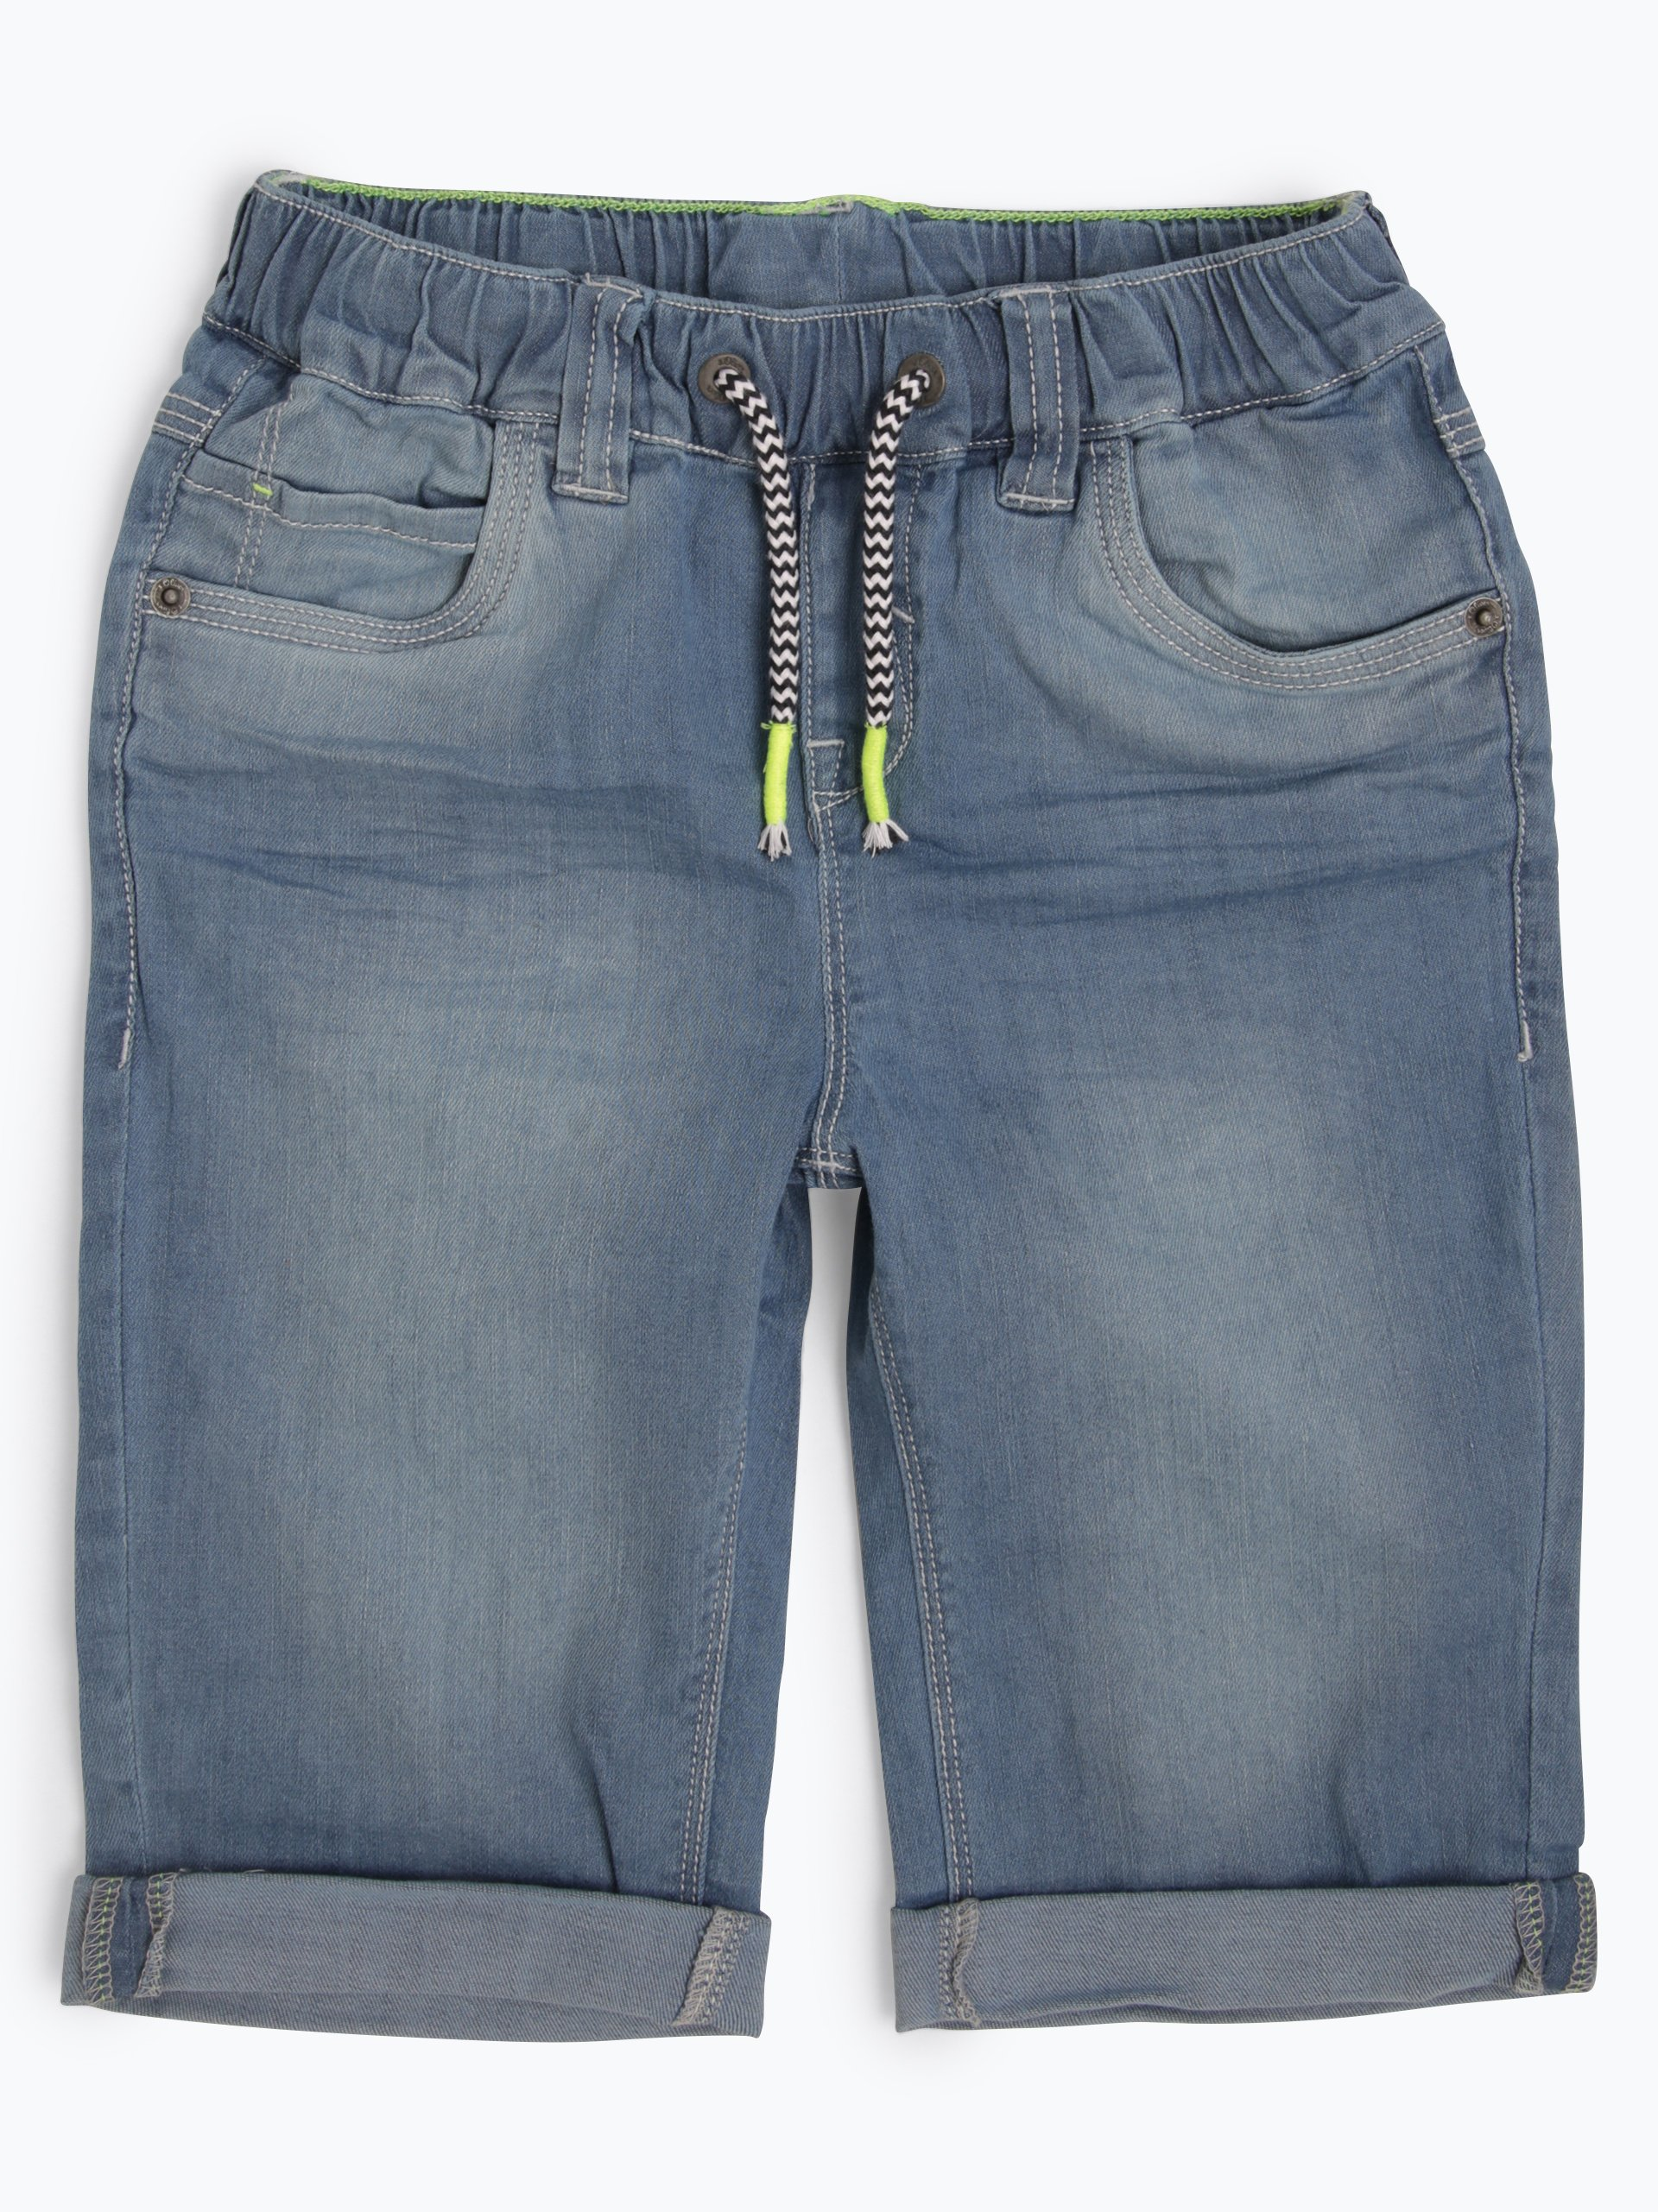 s.Oliver Casual Jungen Jeansshorts Slim Fit